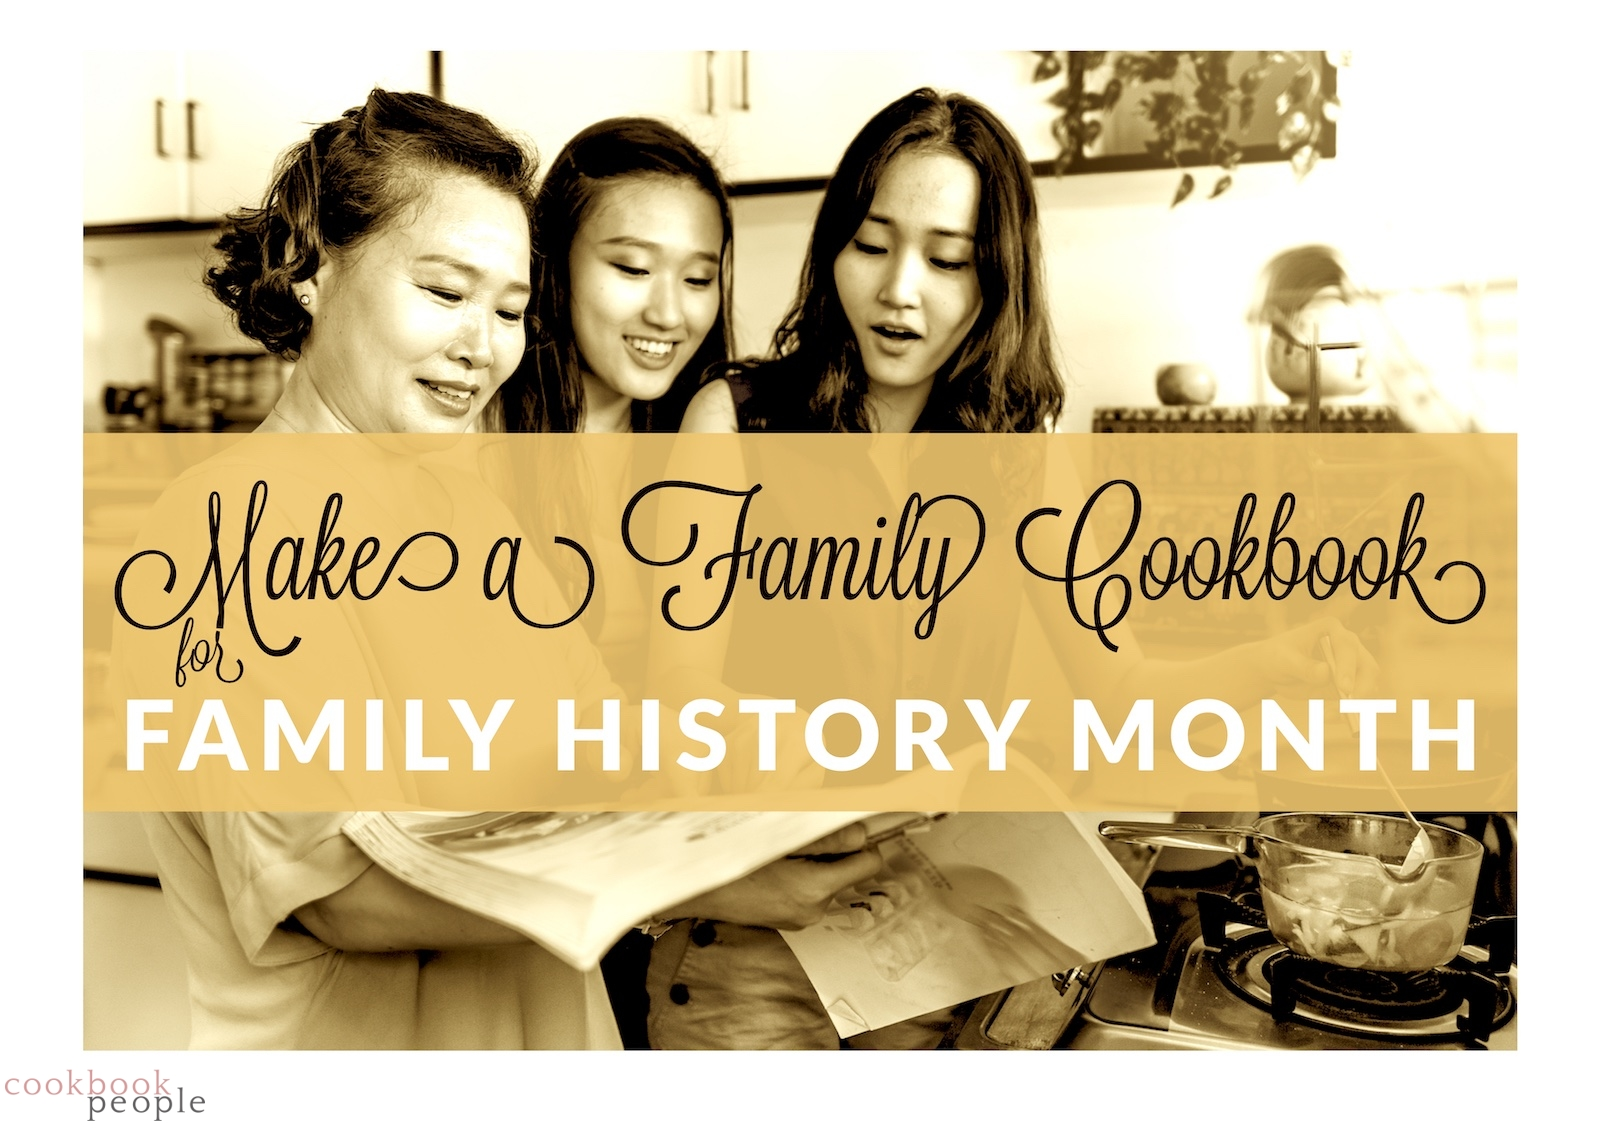 Family gathered around cookbook in kitchen overlaid with text: Make a Family Cookbook for Family History Month